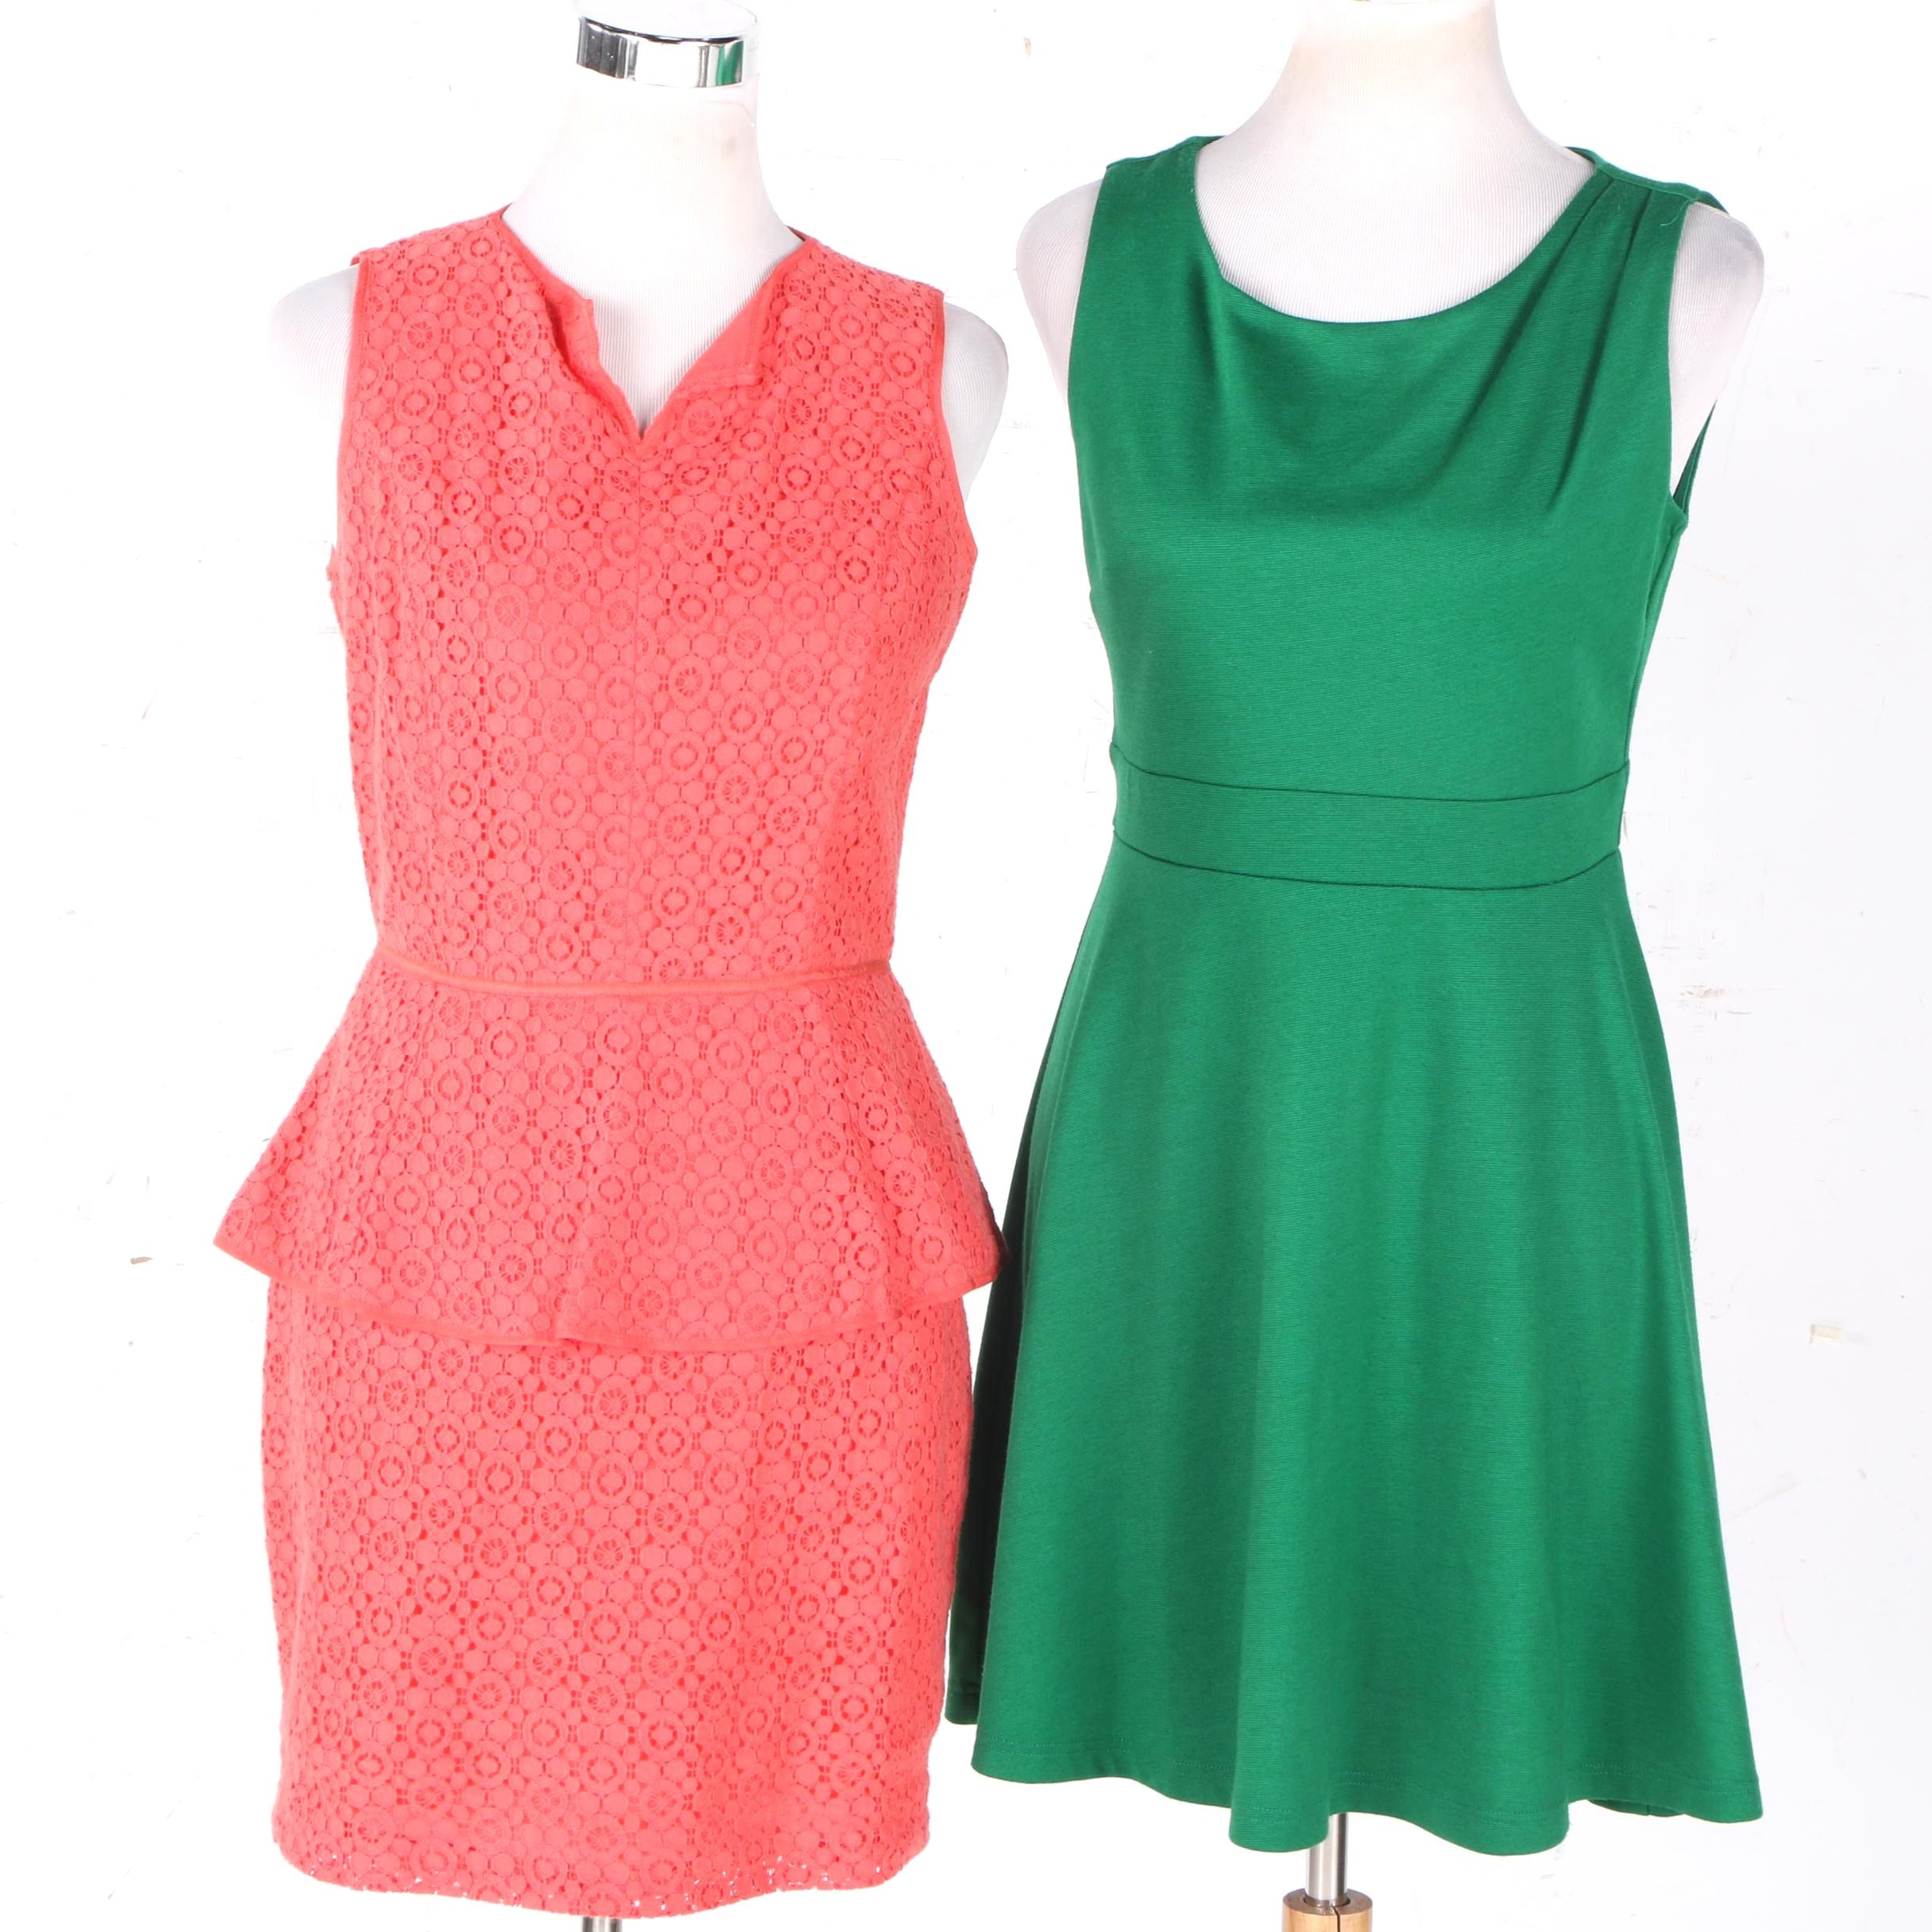 Women's Max Studio and Valerie Bertinelli Sleeveless Dresses